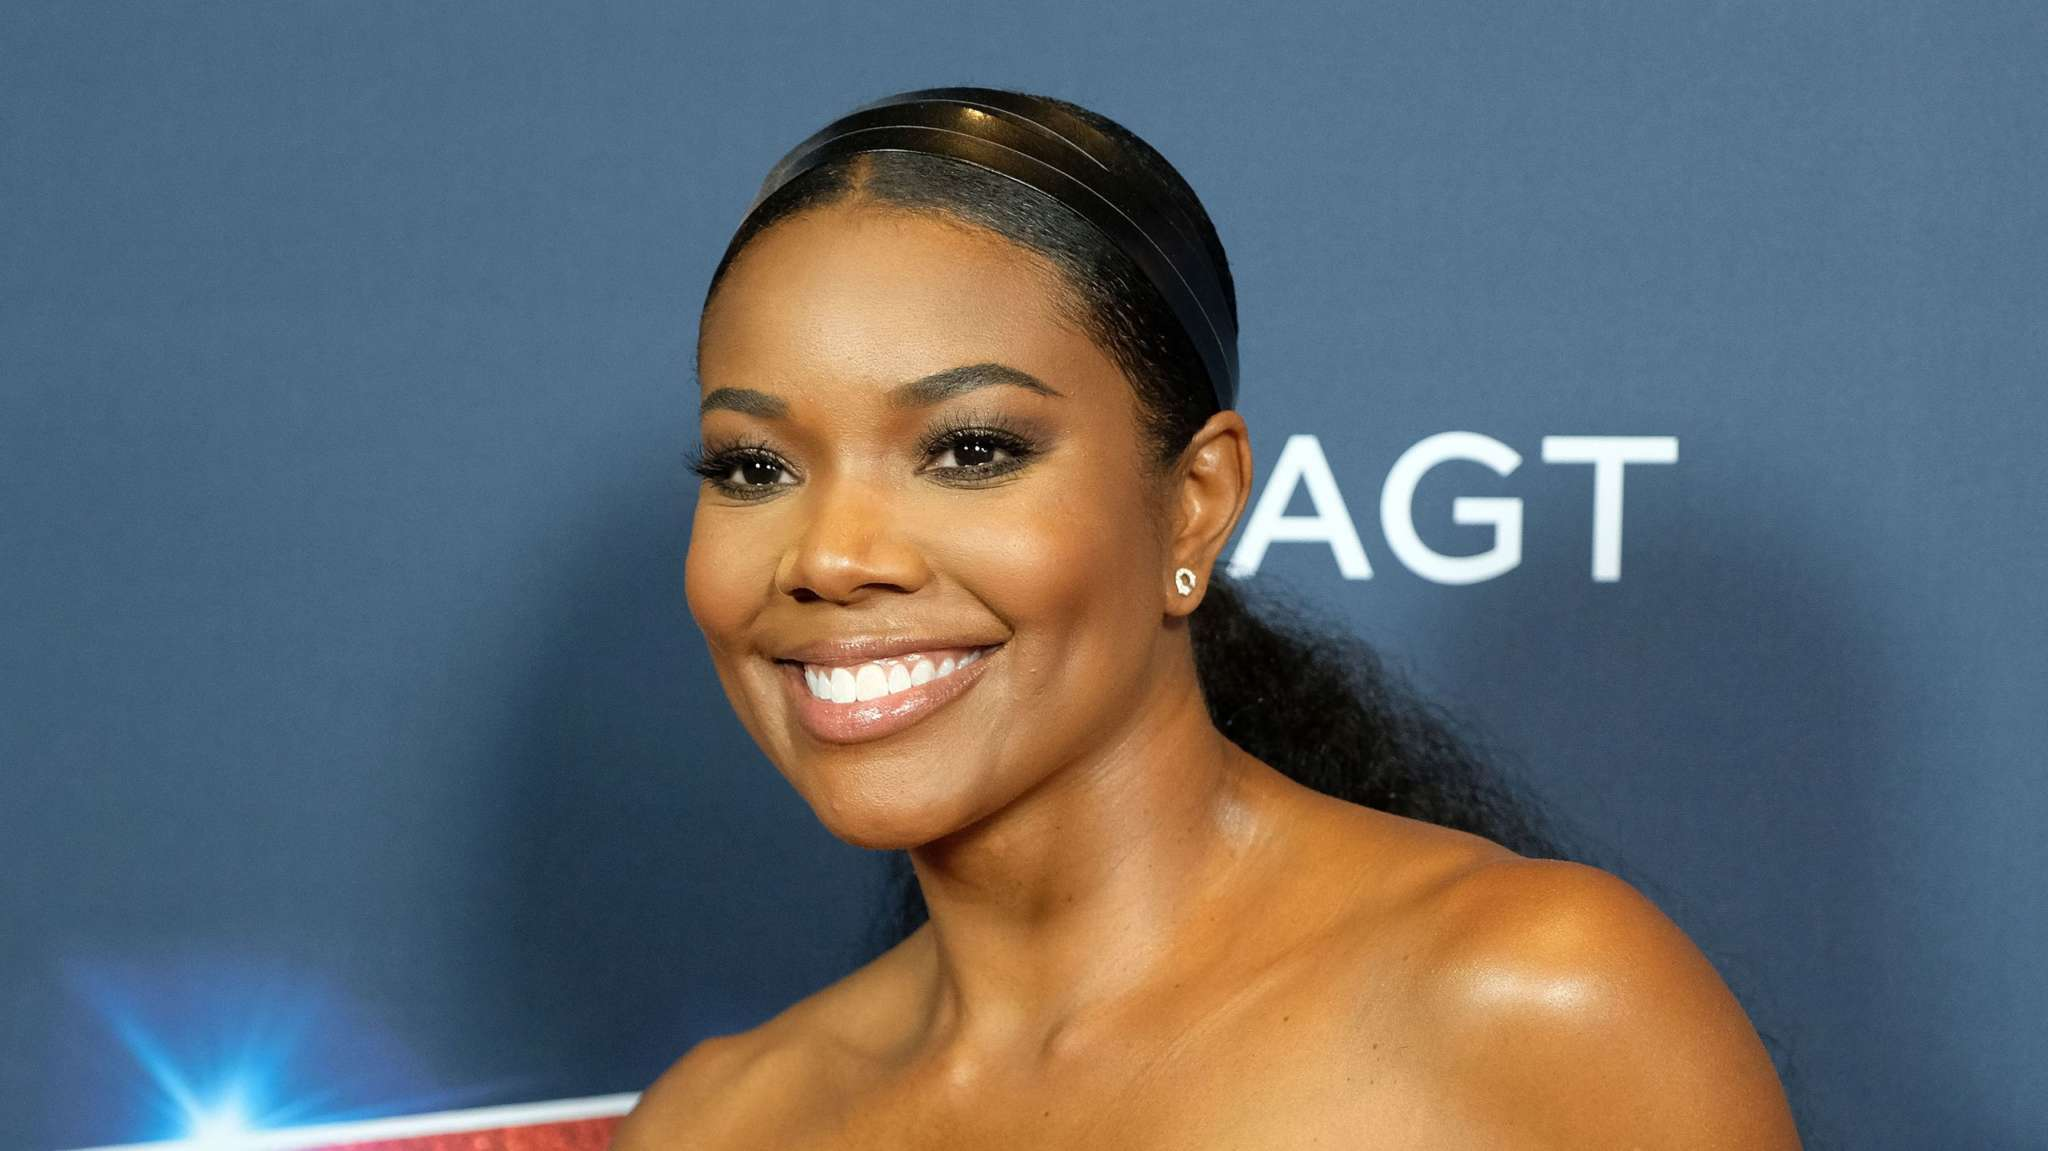 Gabrielle Union Shares Joyful Video On Social Media - See It Here